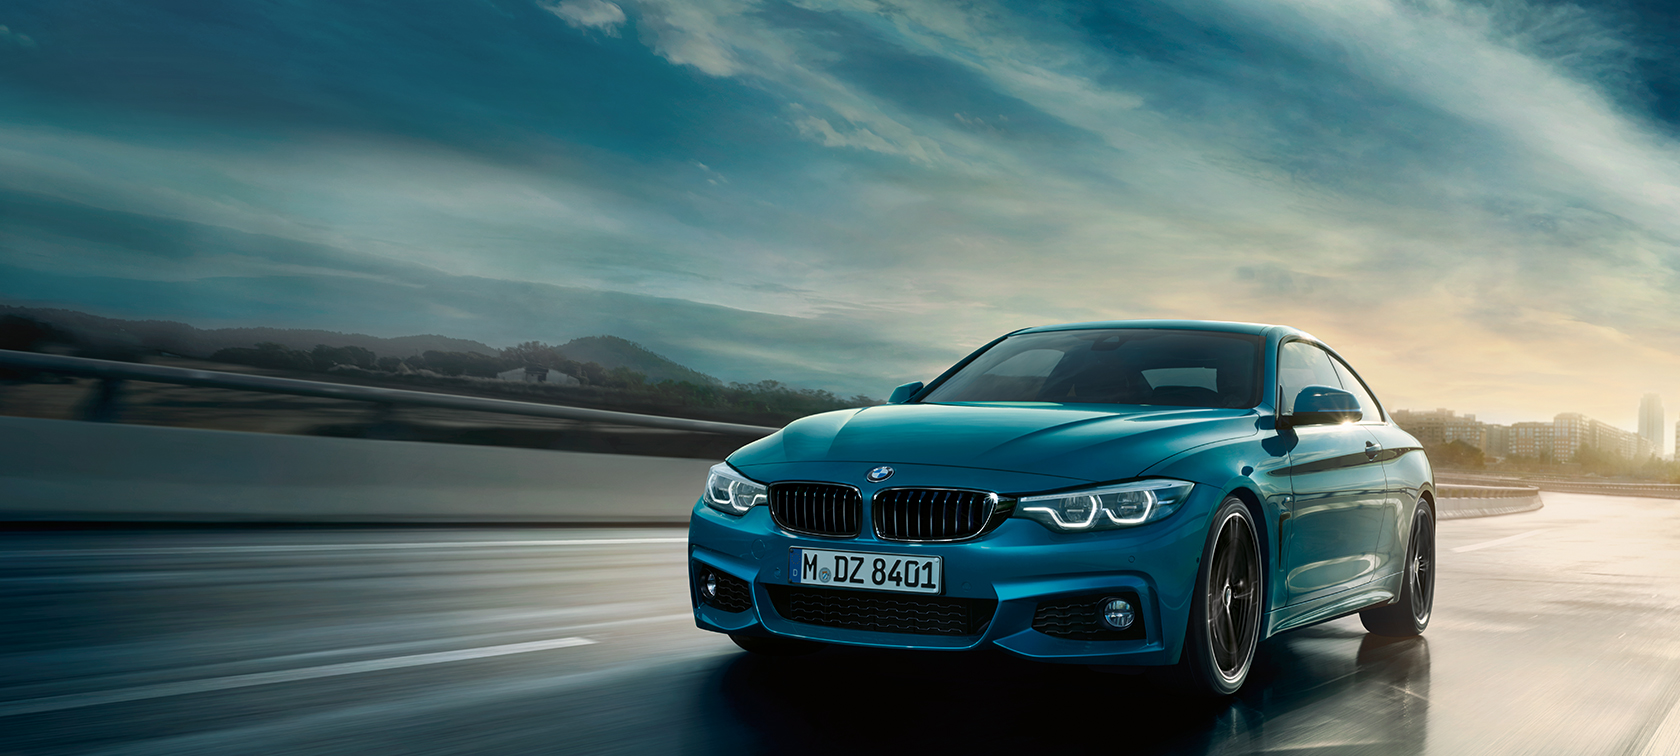 BMW 4 Series Coupé driving shot